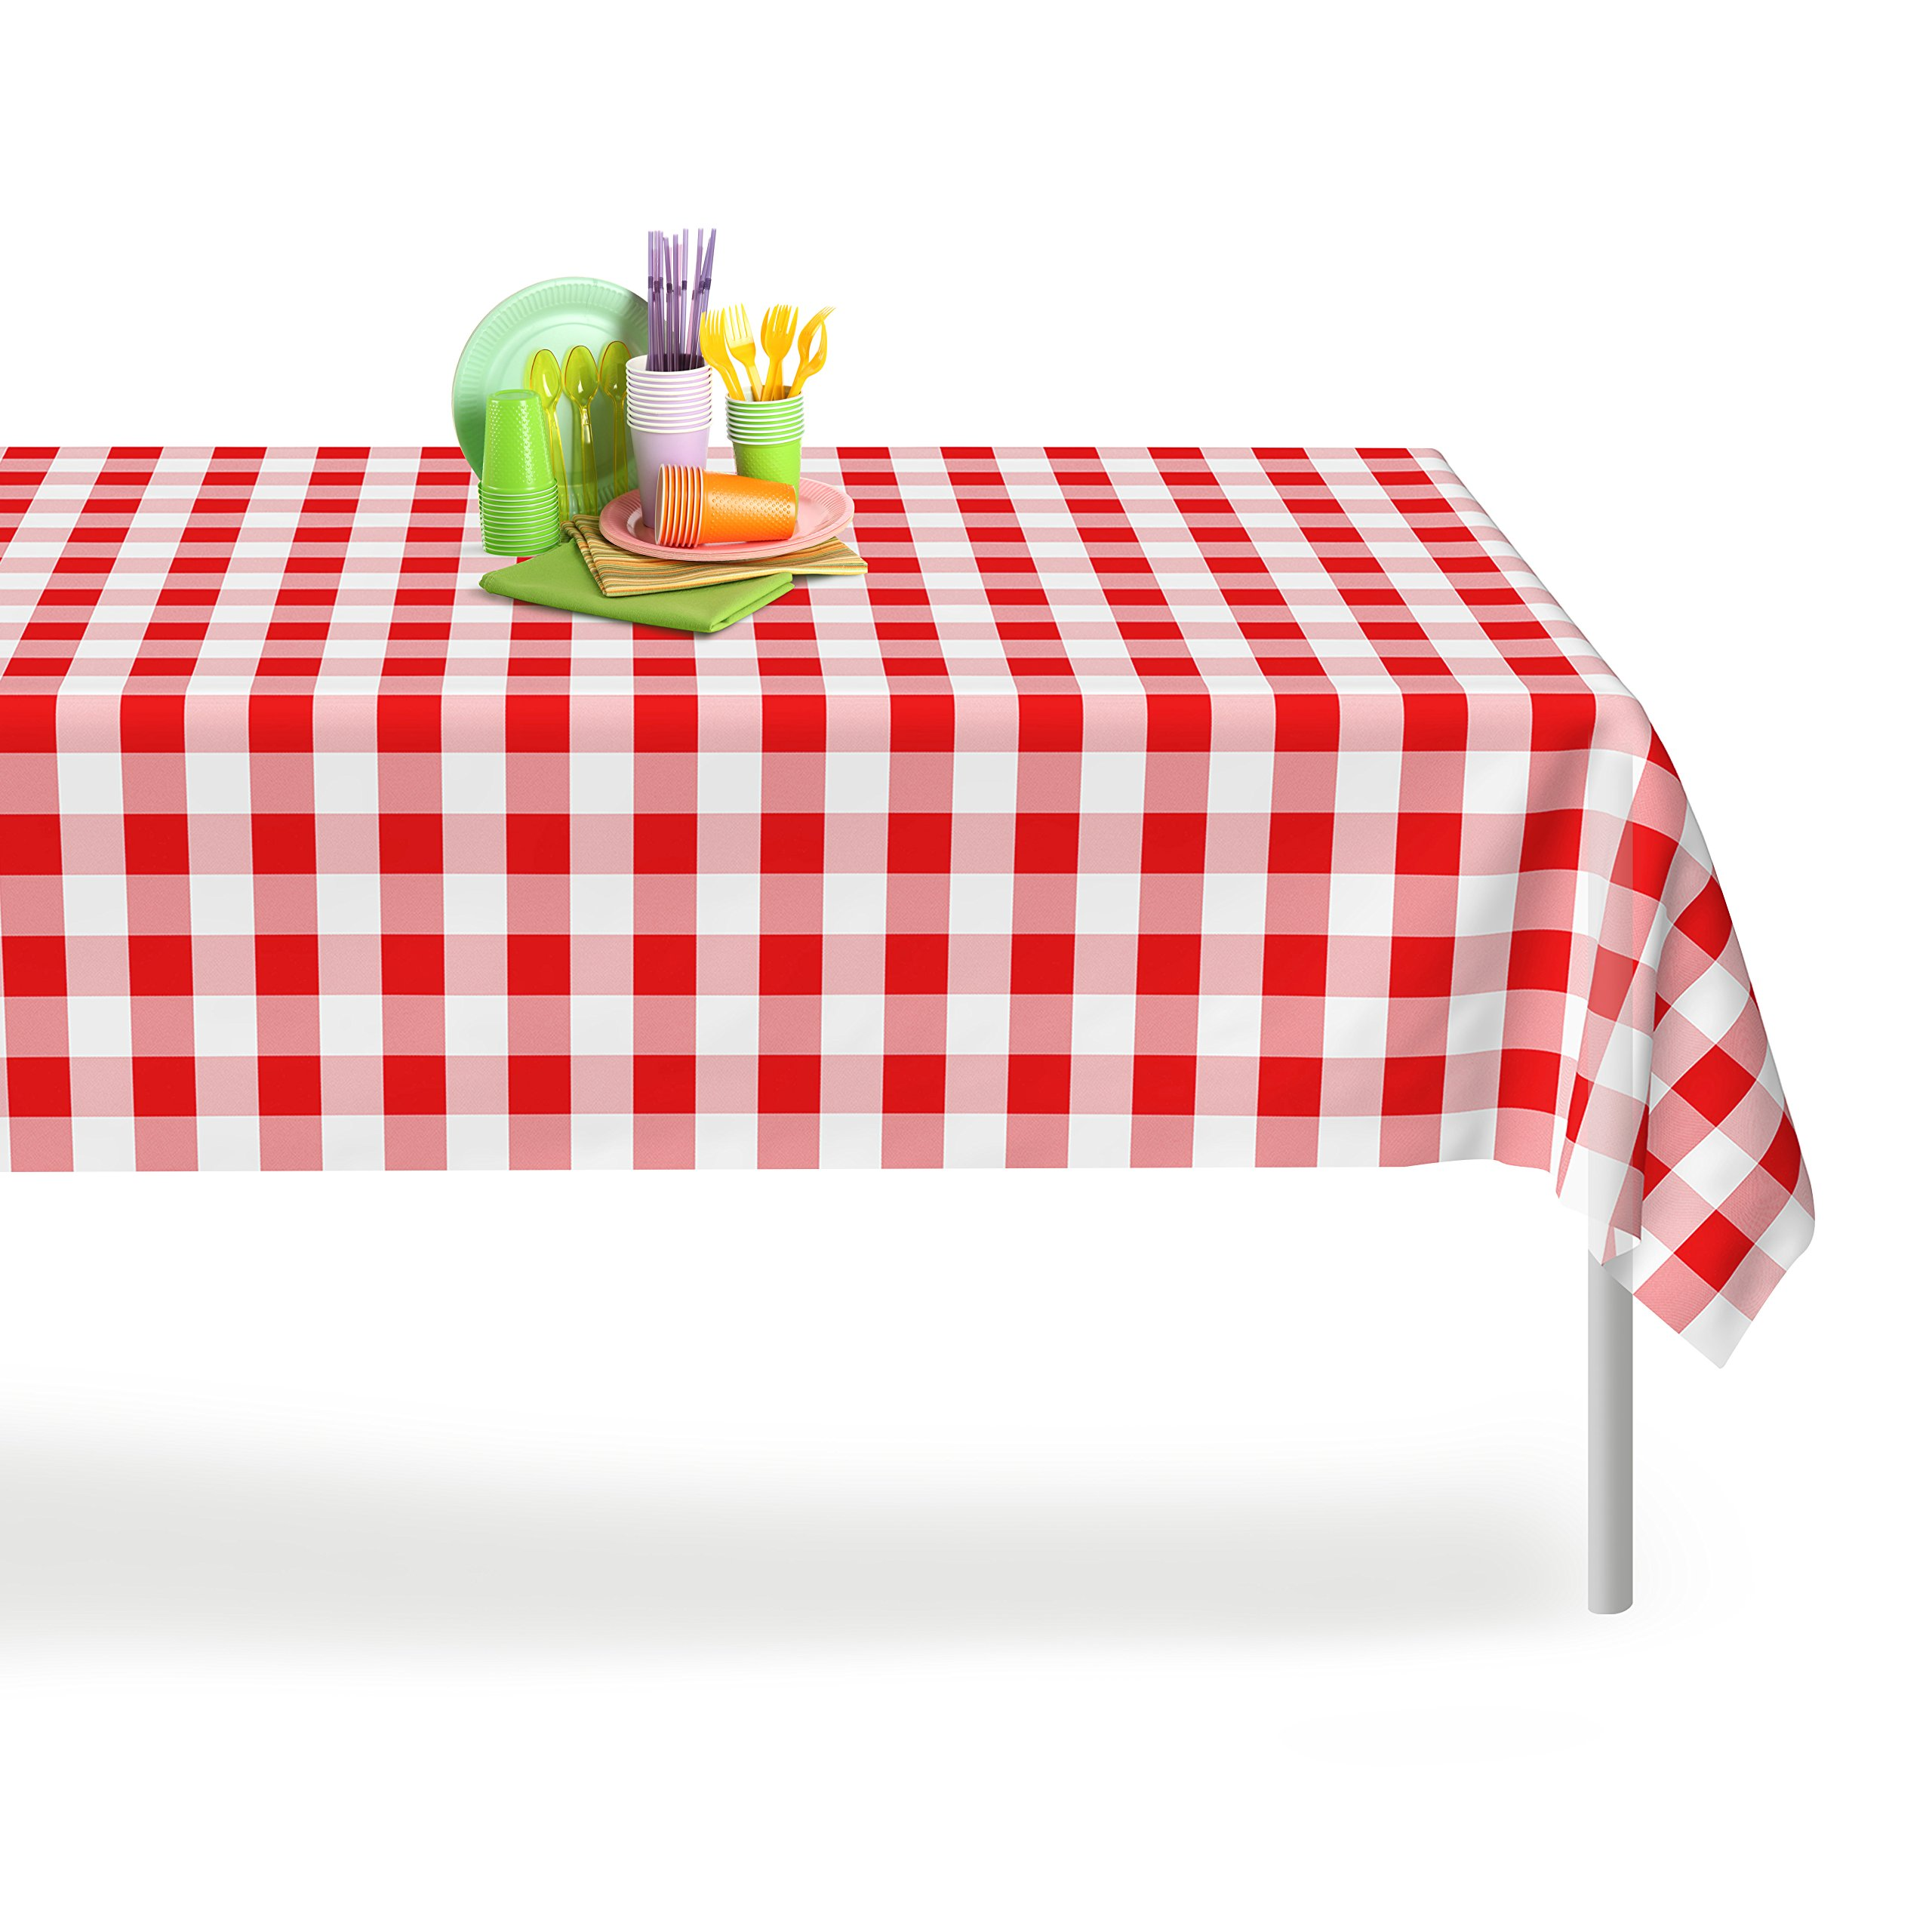 Red Gingham Checkered 12 Pack Premium Disposable Plastic Picnic Tablecloth 54 Inch. x 108 Inch. Rectangle Table Cover By Grandipity